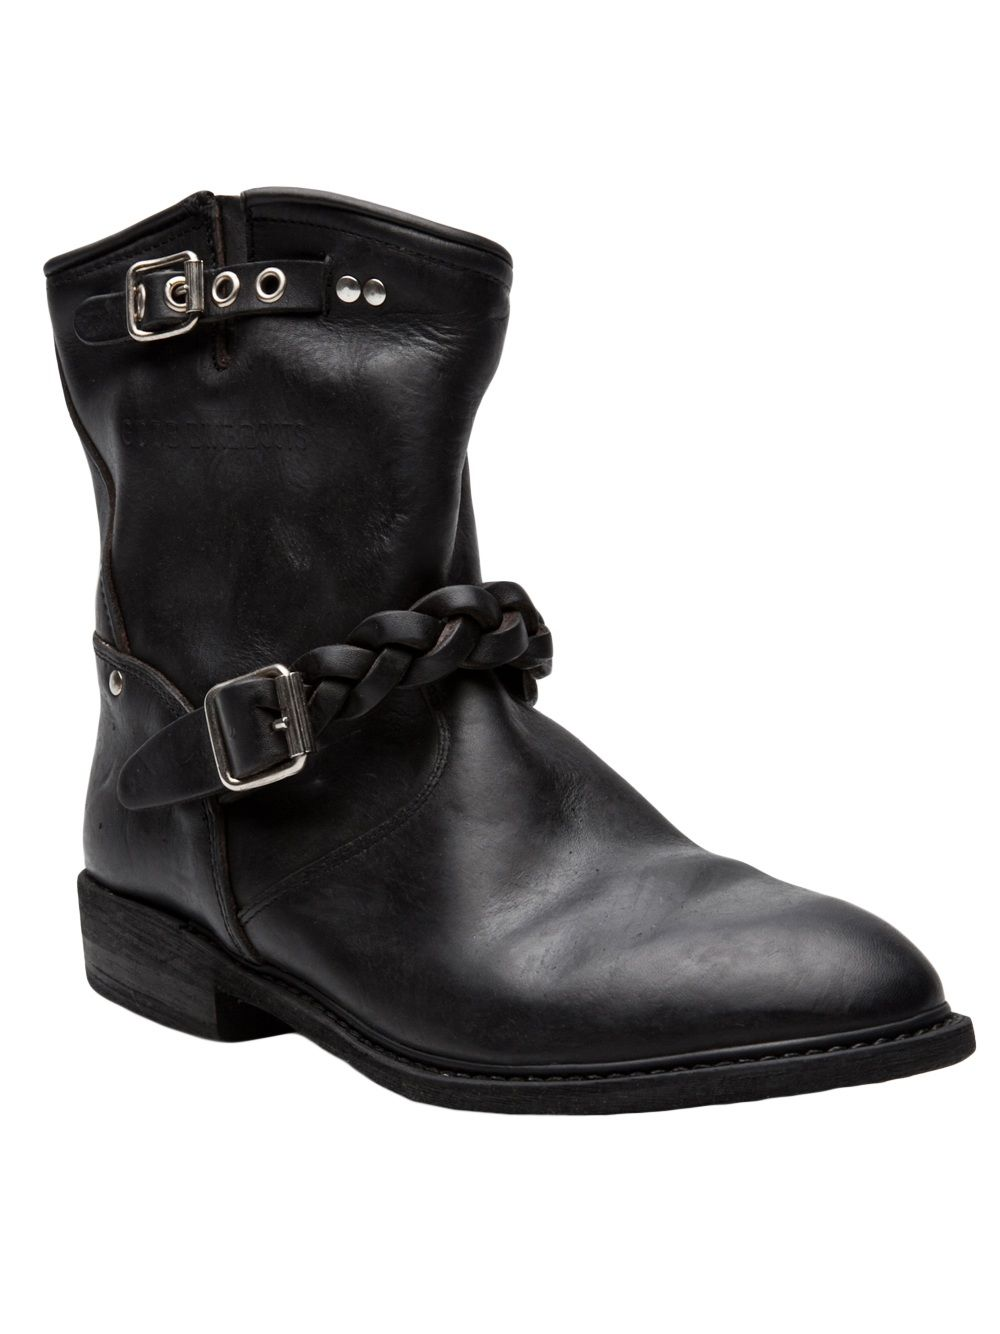 """Golden Goose Deluxe Brand  Short biker boot - Short biker boot in black from Golden Goose Deluxe Brand. This leather biker boot features a round toe, braided cross strap with a silver buckle fasten, contrasting suede detail throughout, and a small side strap with silver buckle fasten. Has round silver stud detail, tonal seam stitching, and shearling lining. Has a 7"""" shaft."""